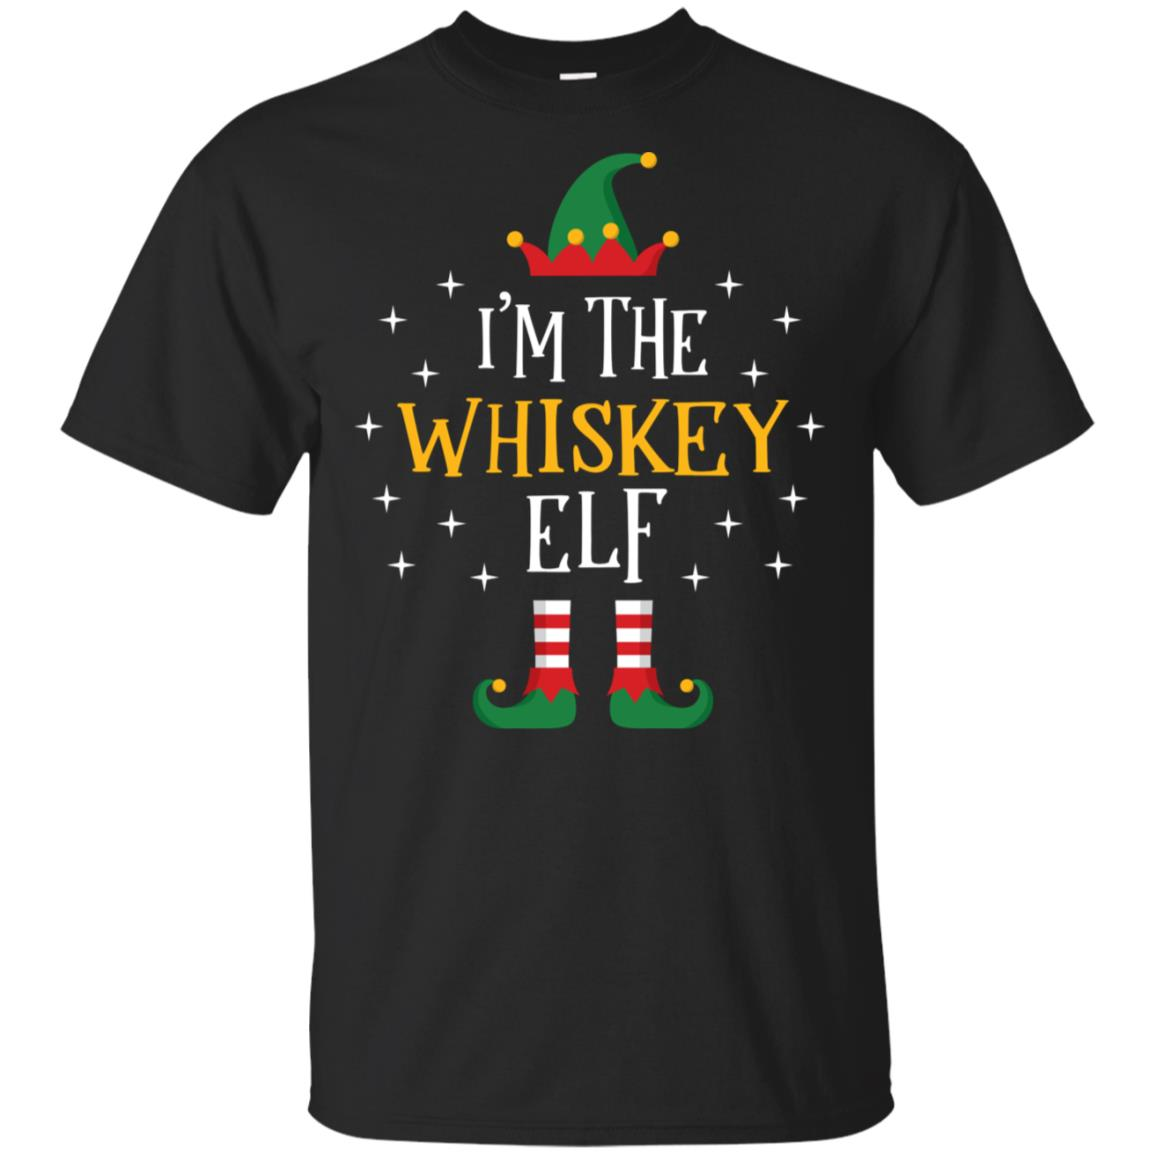 I'm The Whiskey Elf Funny Xmas Gift Family Group Unisex Short Sleeve